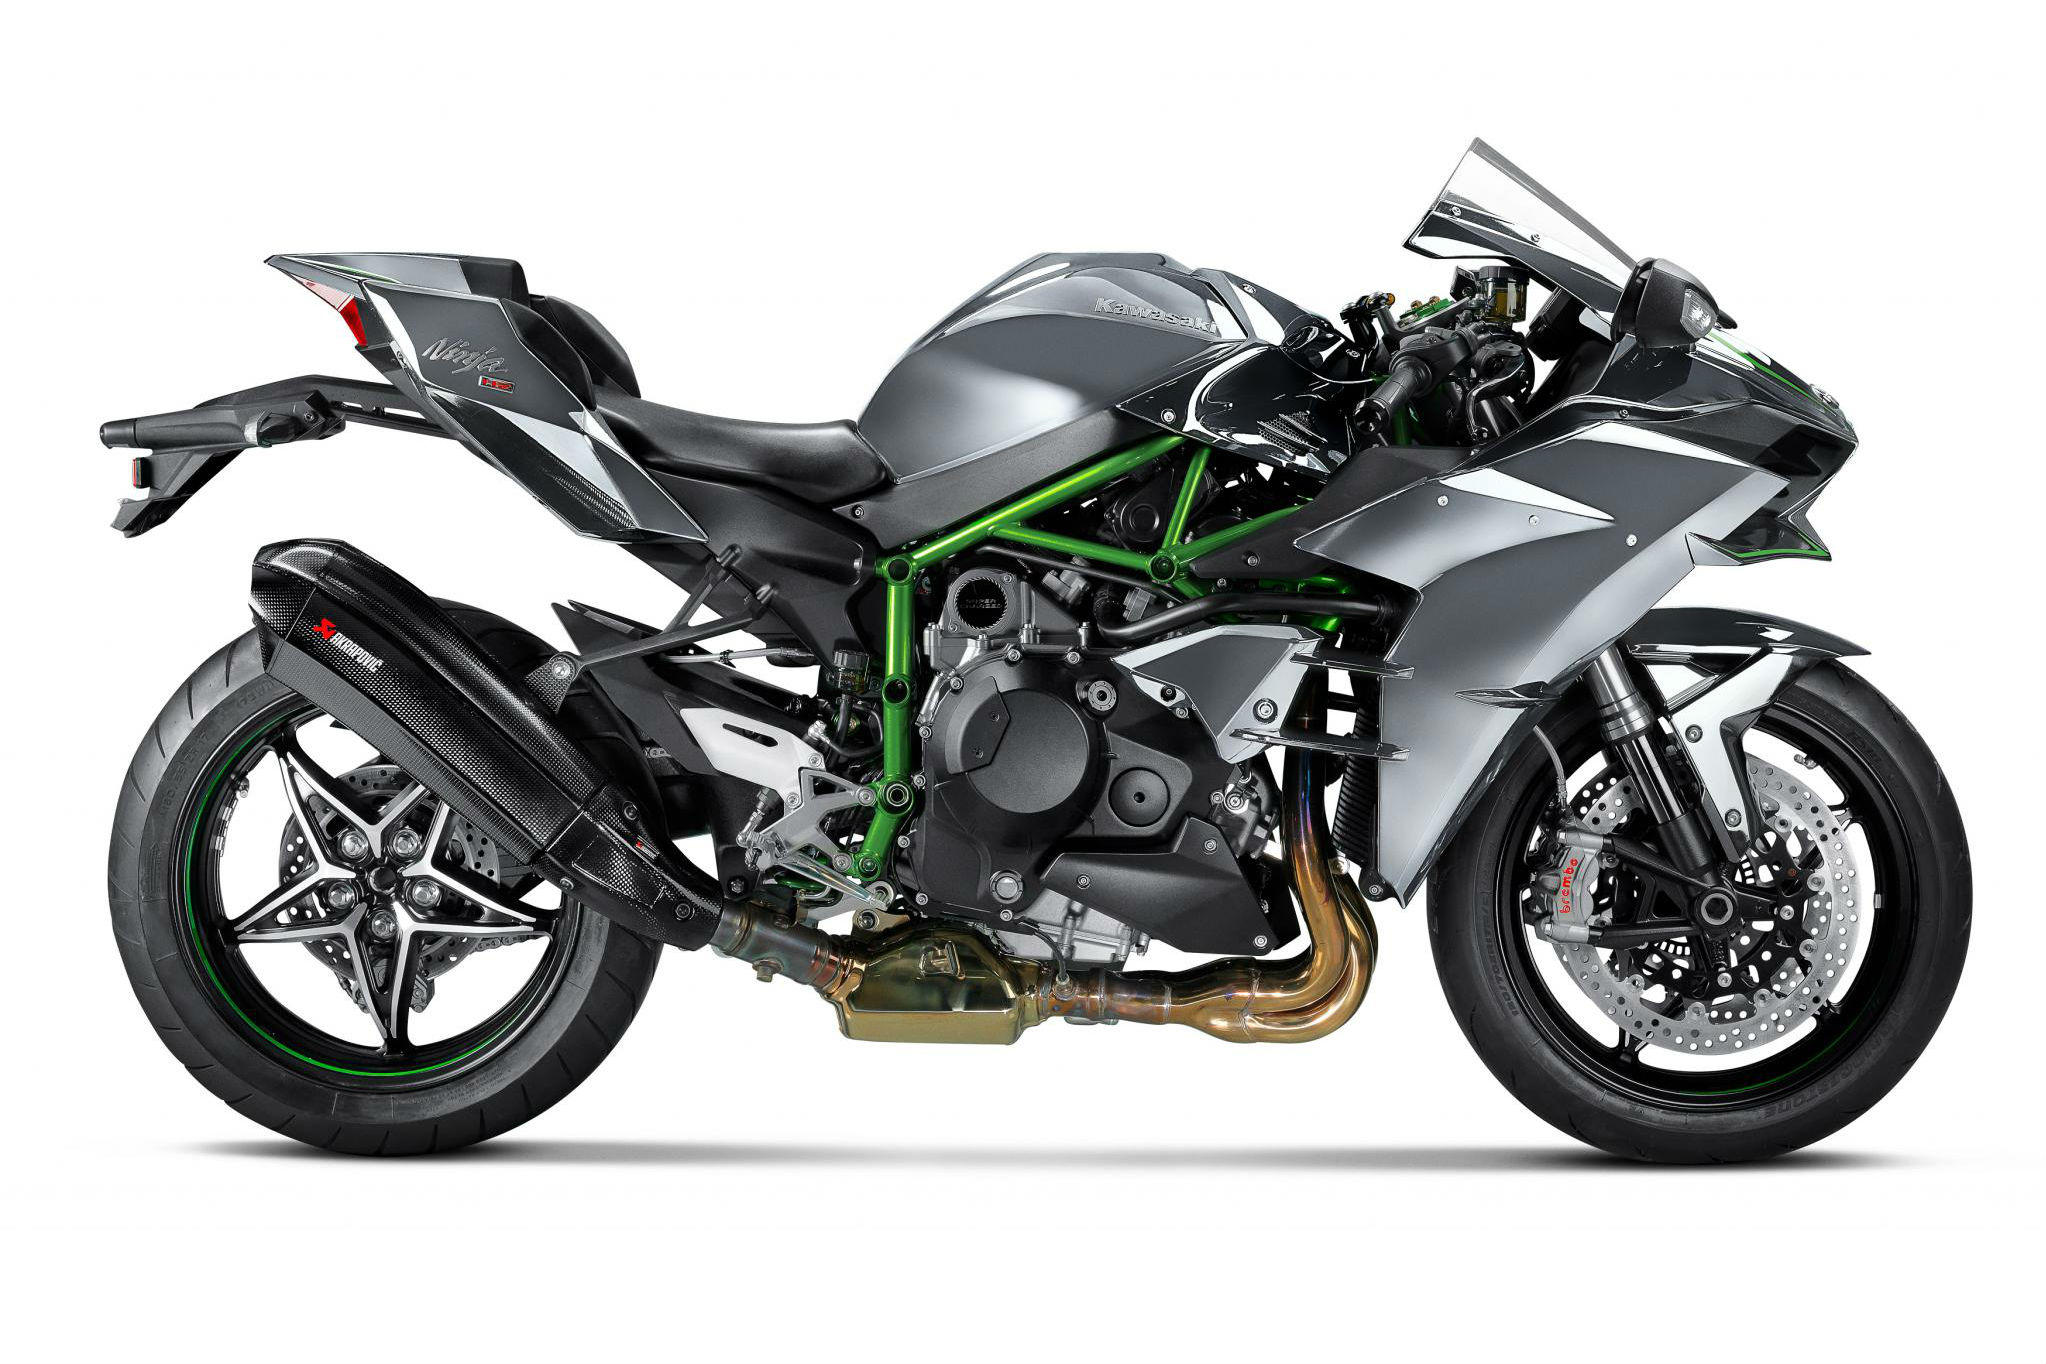 Top 10 most powerful bikes of 2015 (so far)